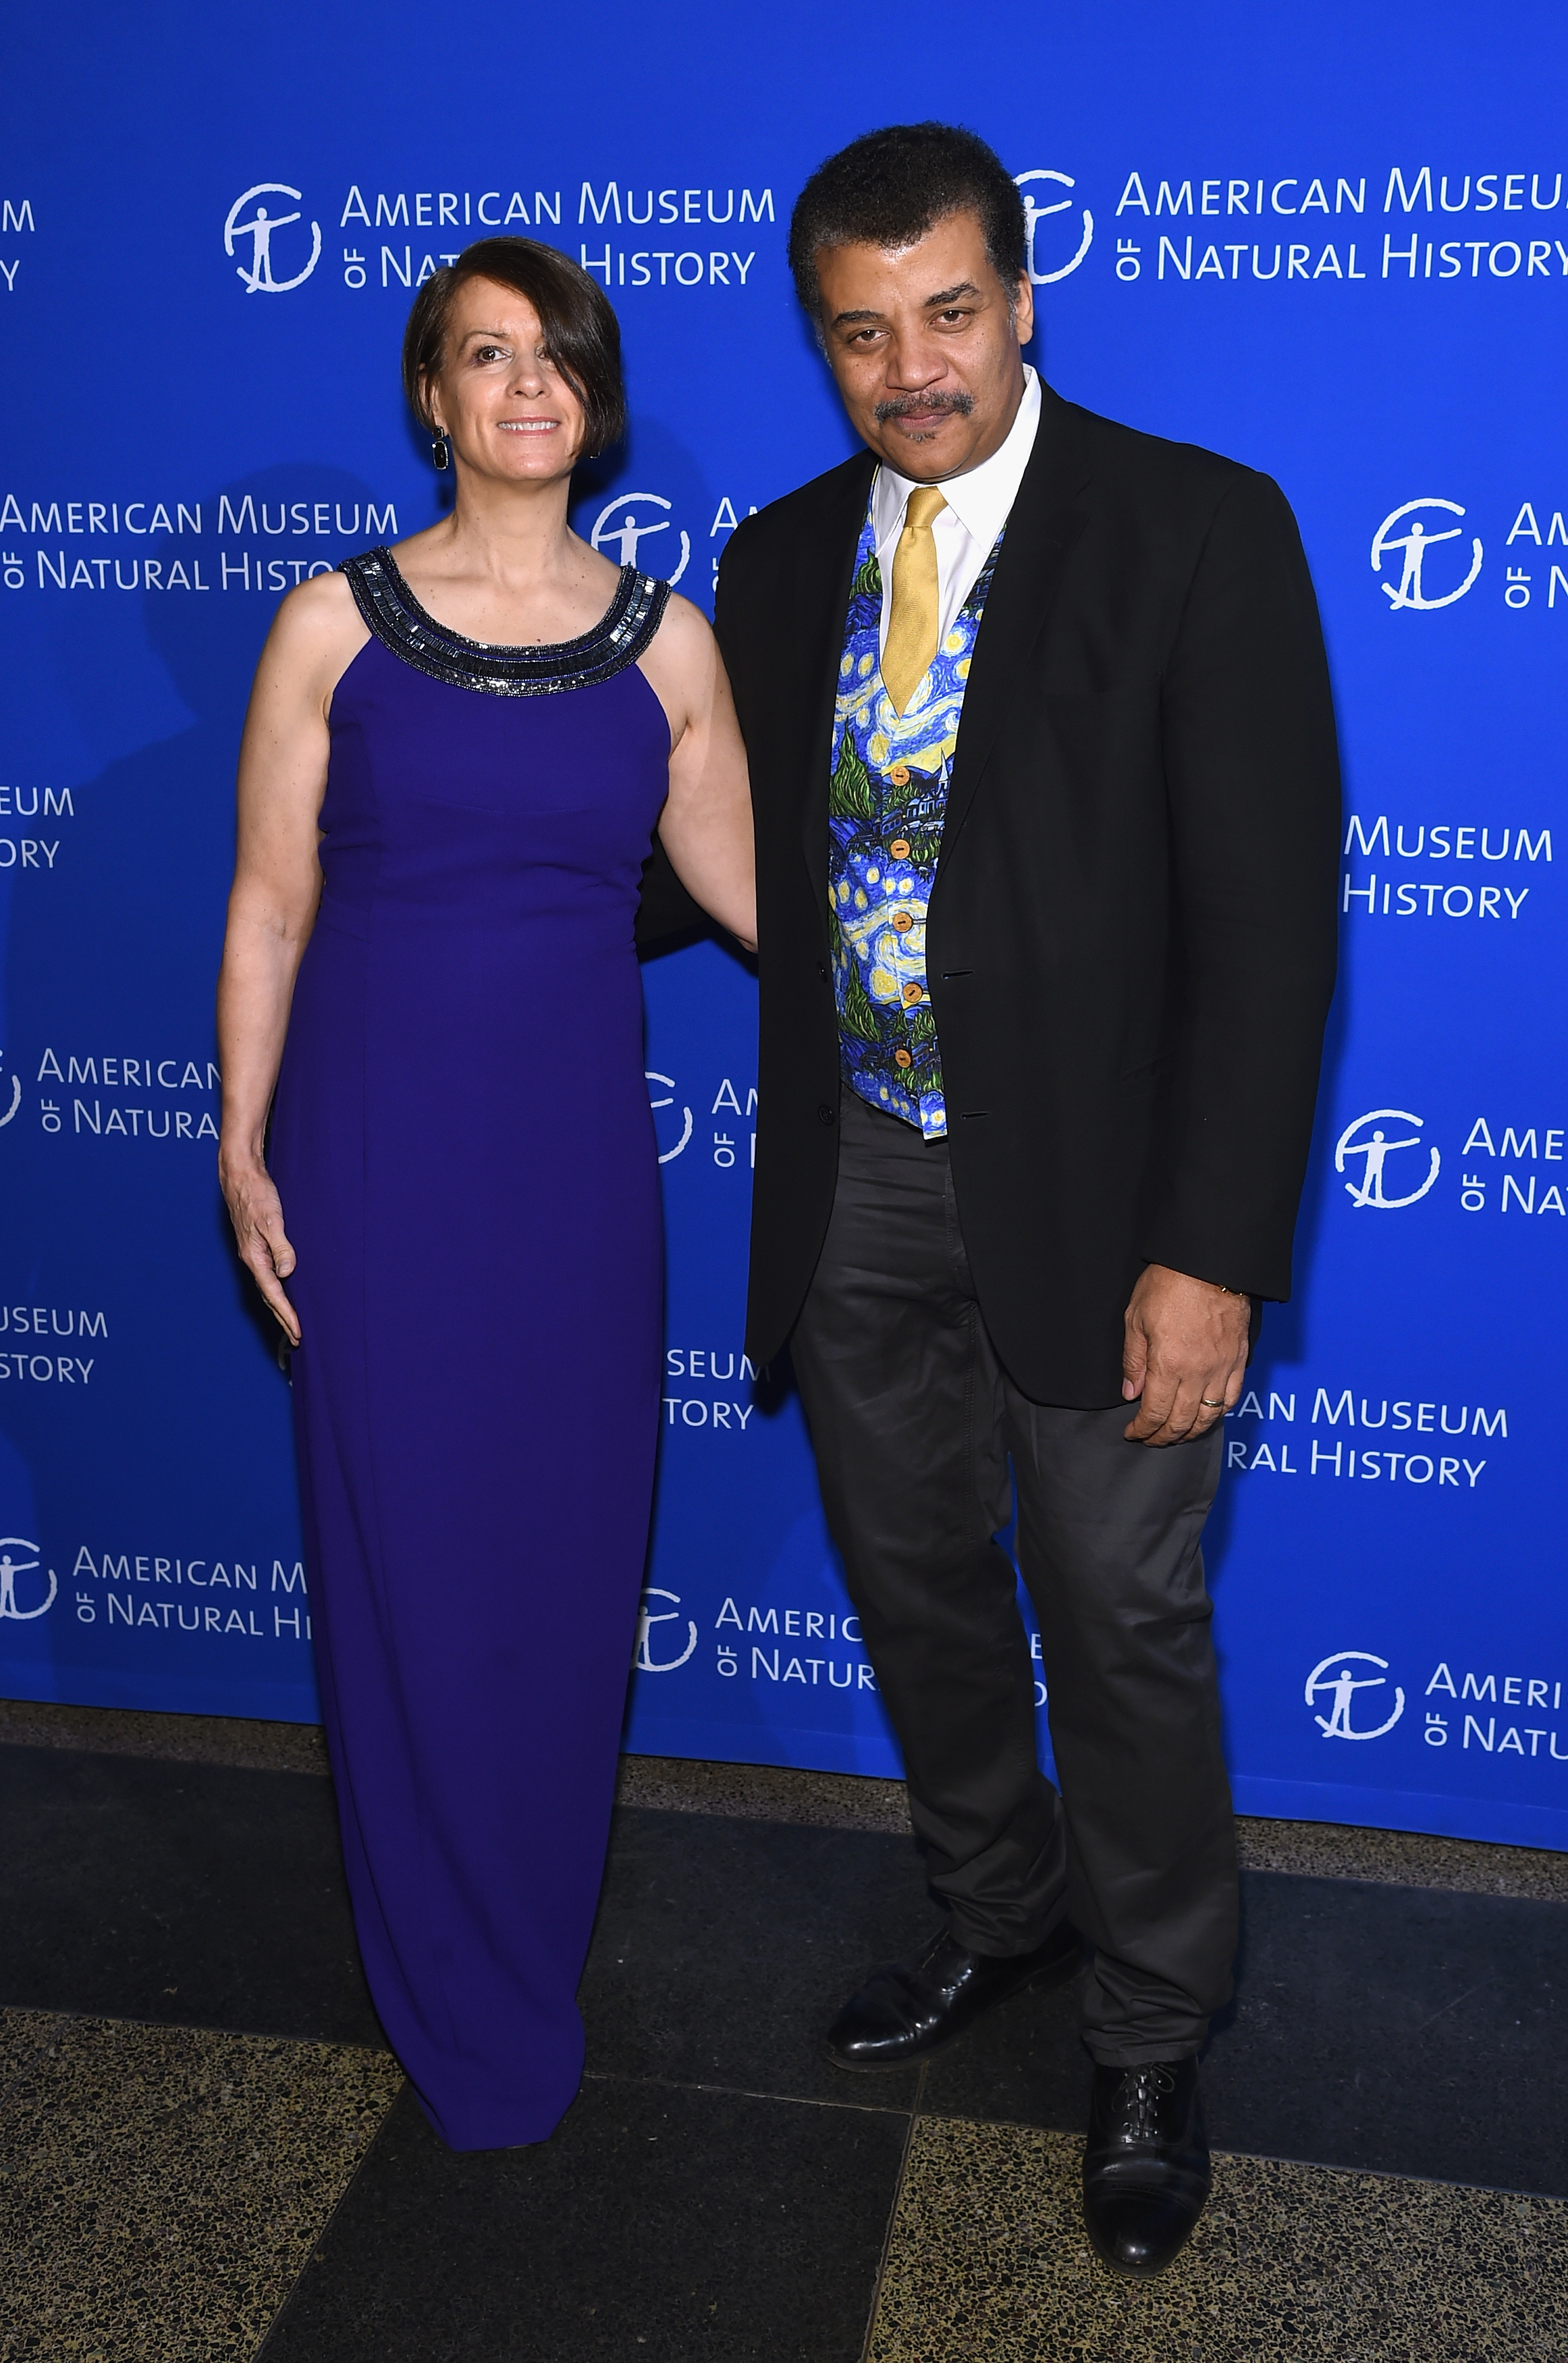 Neil deGrasse Tyson and Alice Young attend the American Museum Of Natural History's 2017 Museum Gala at American Museum of Natural History on November 30, 2017 in New York City. (Photo by Jamie McCarthy/Getty Images)